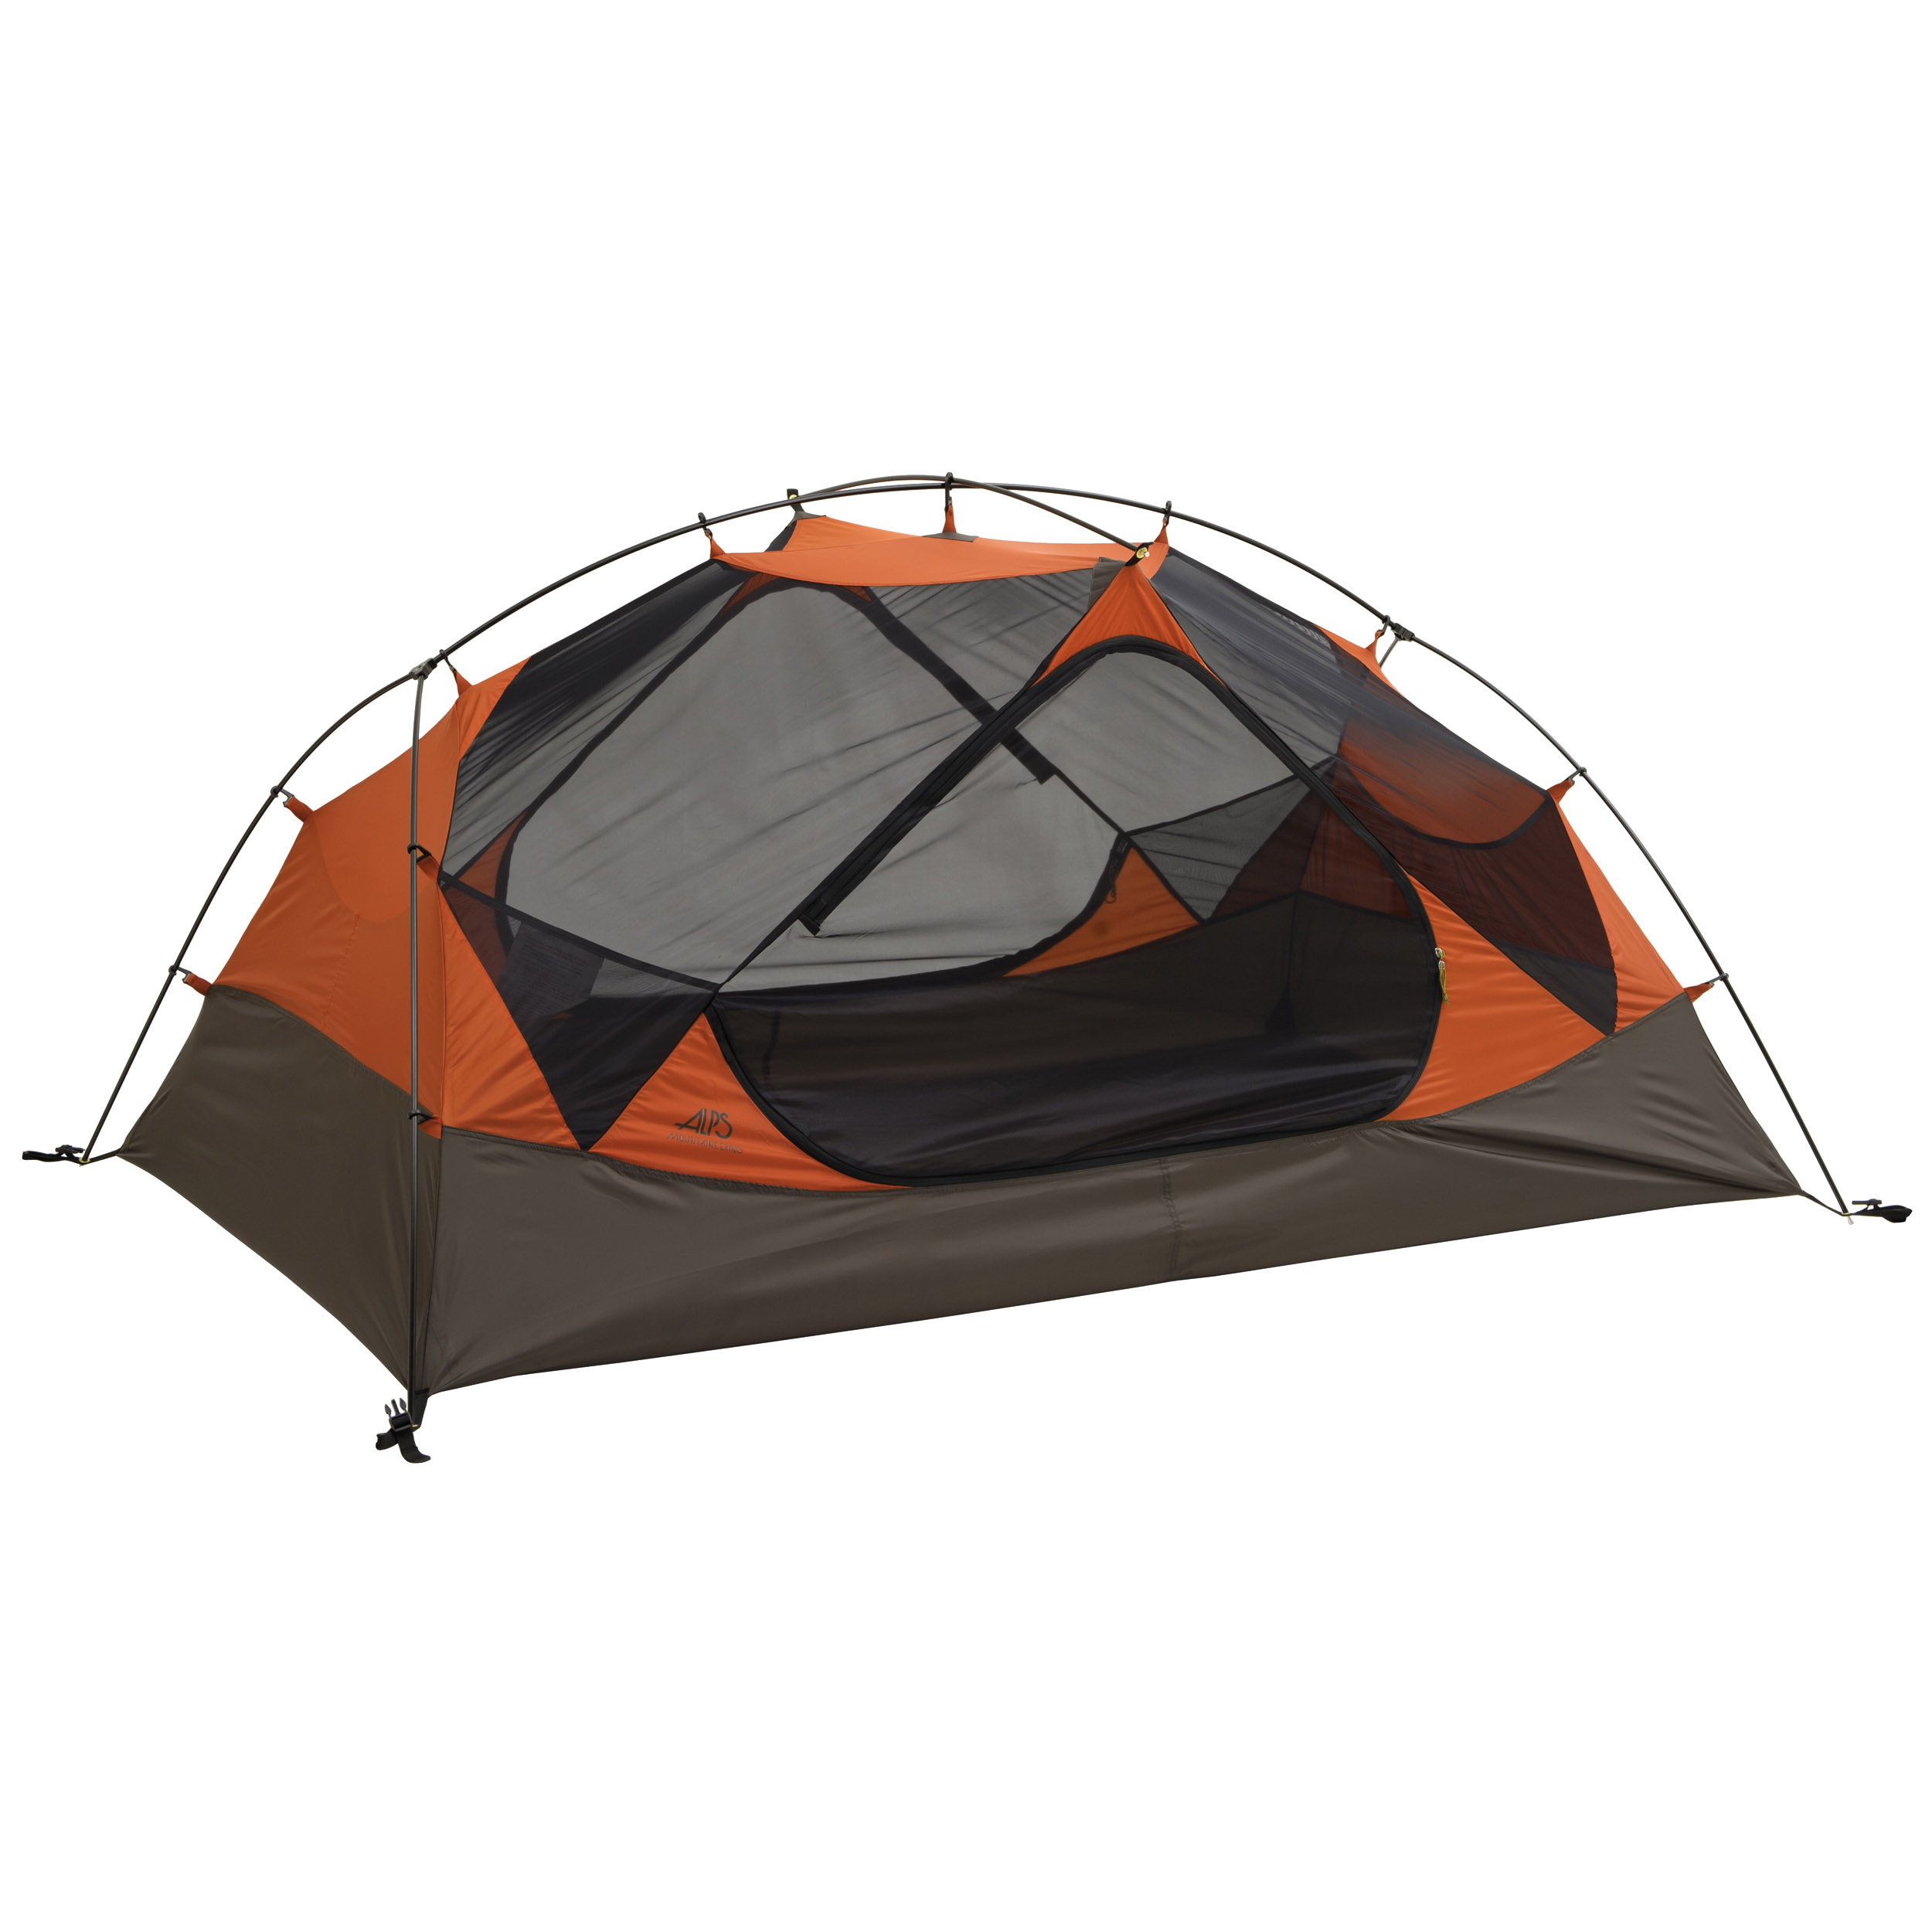 5352025 Chaos 3, 3 Person Backpacking Tent, Dark Clay/Rust